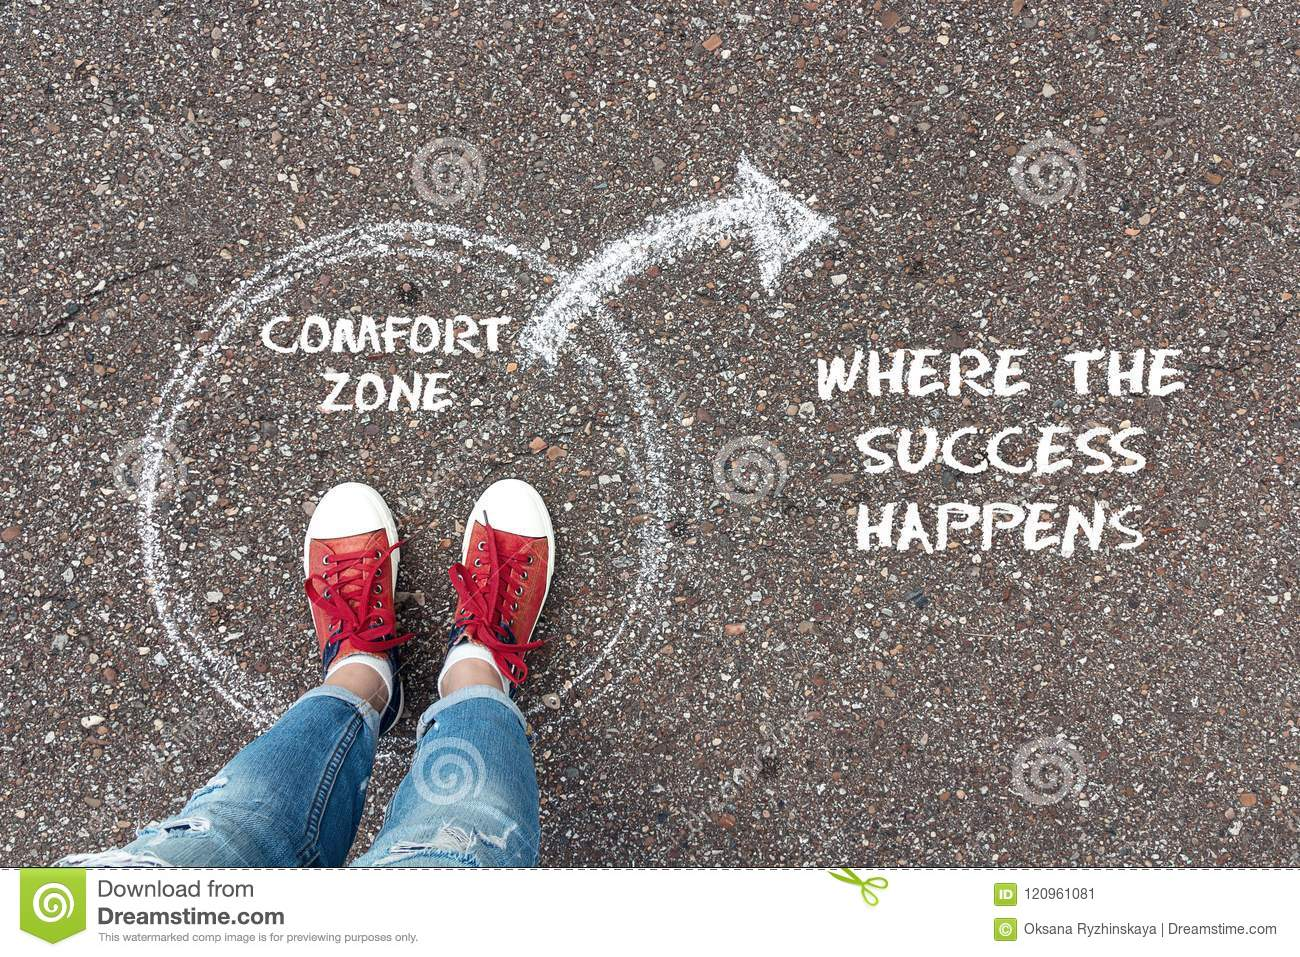 Exit from the comfort zone concept. Feet standing inside circle